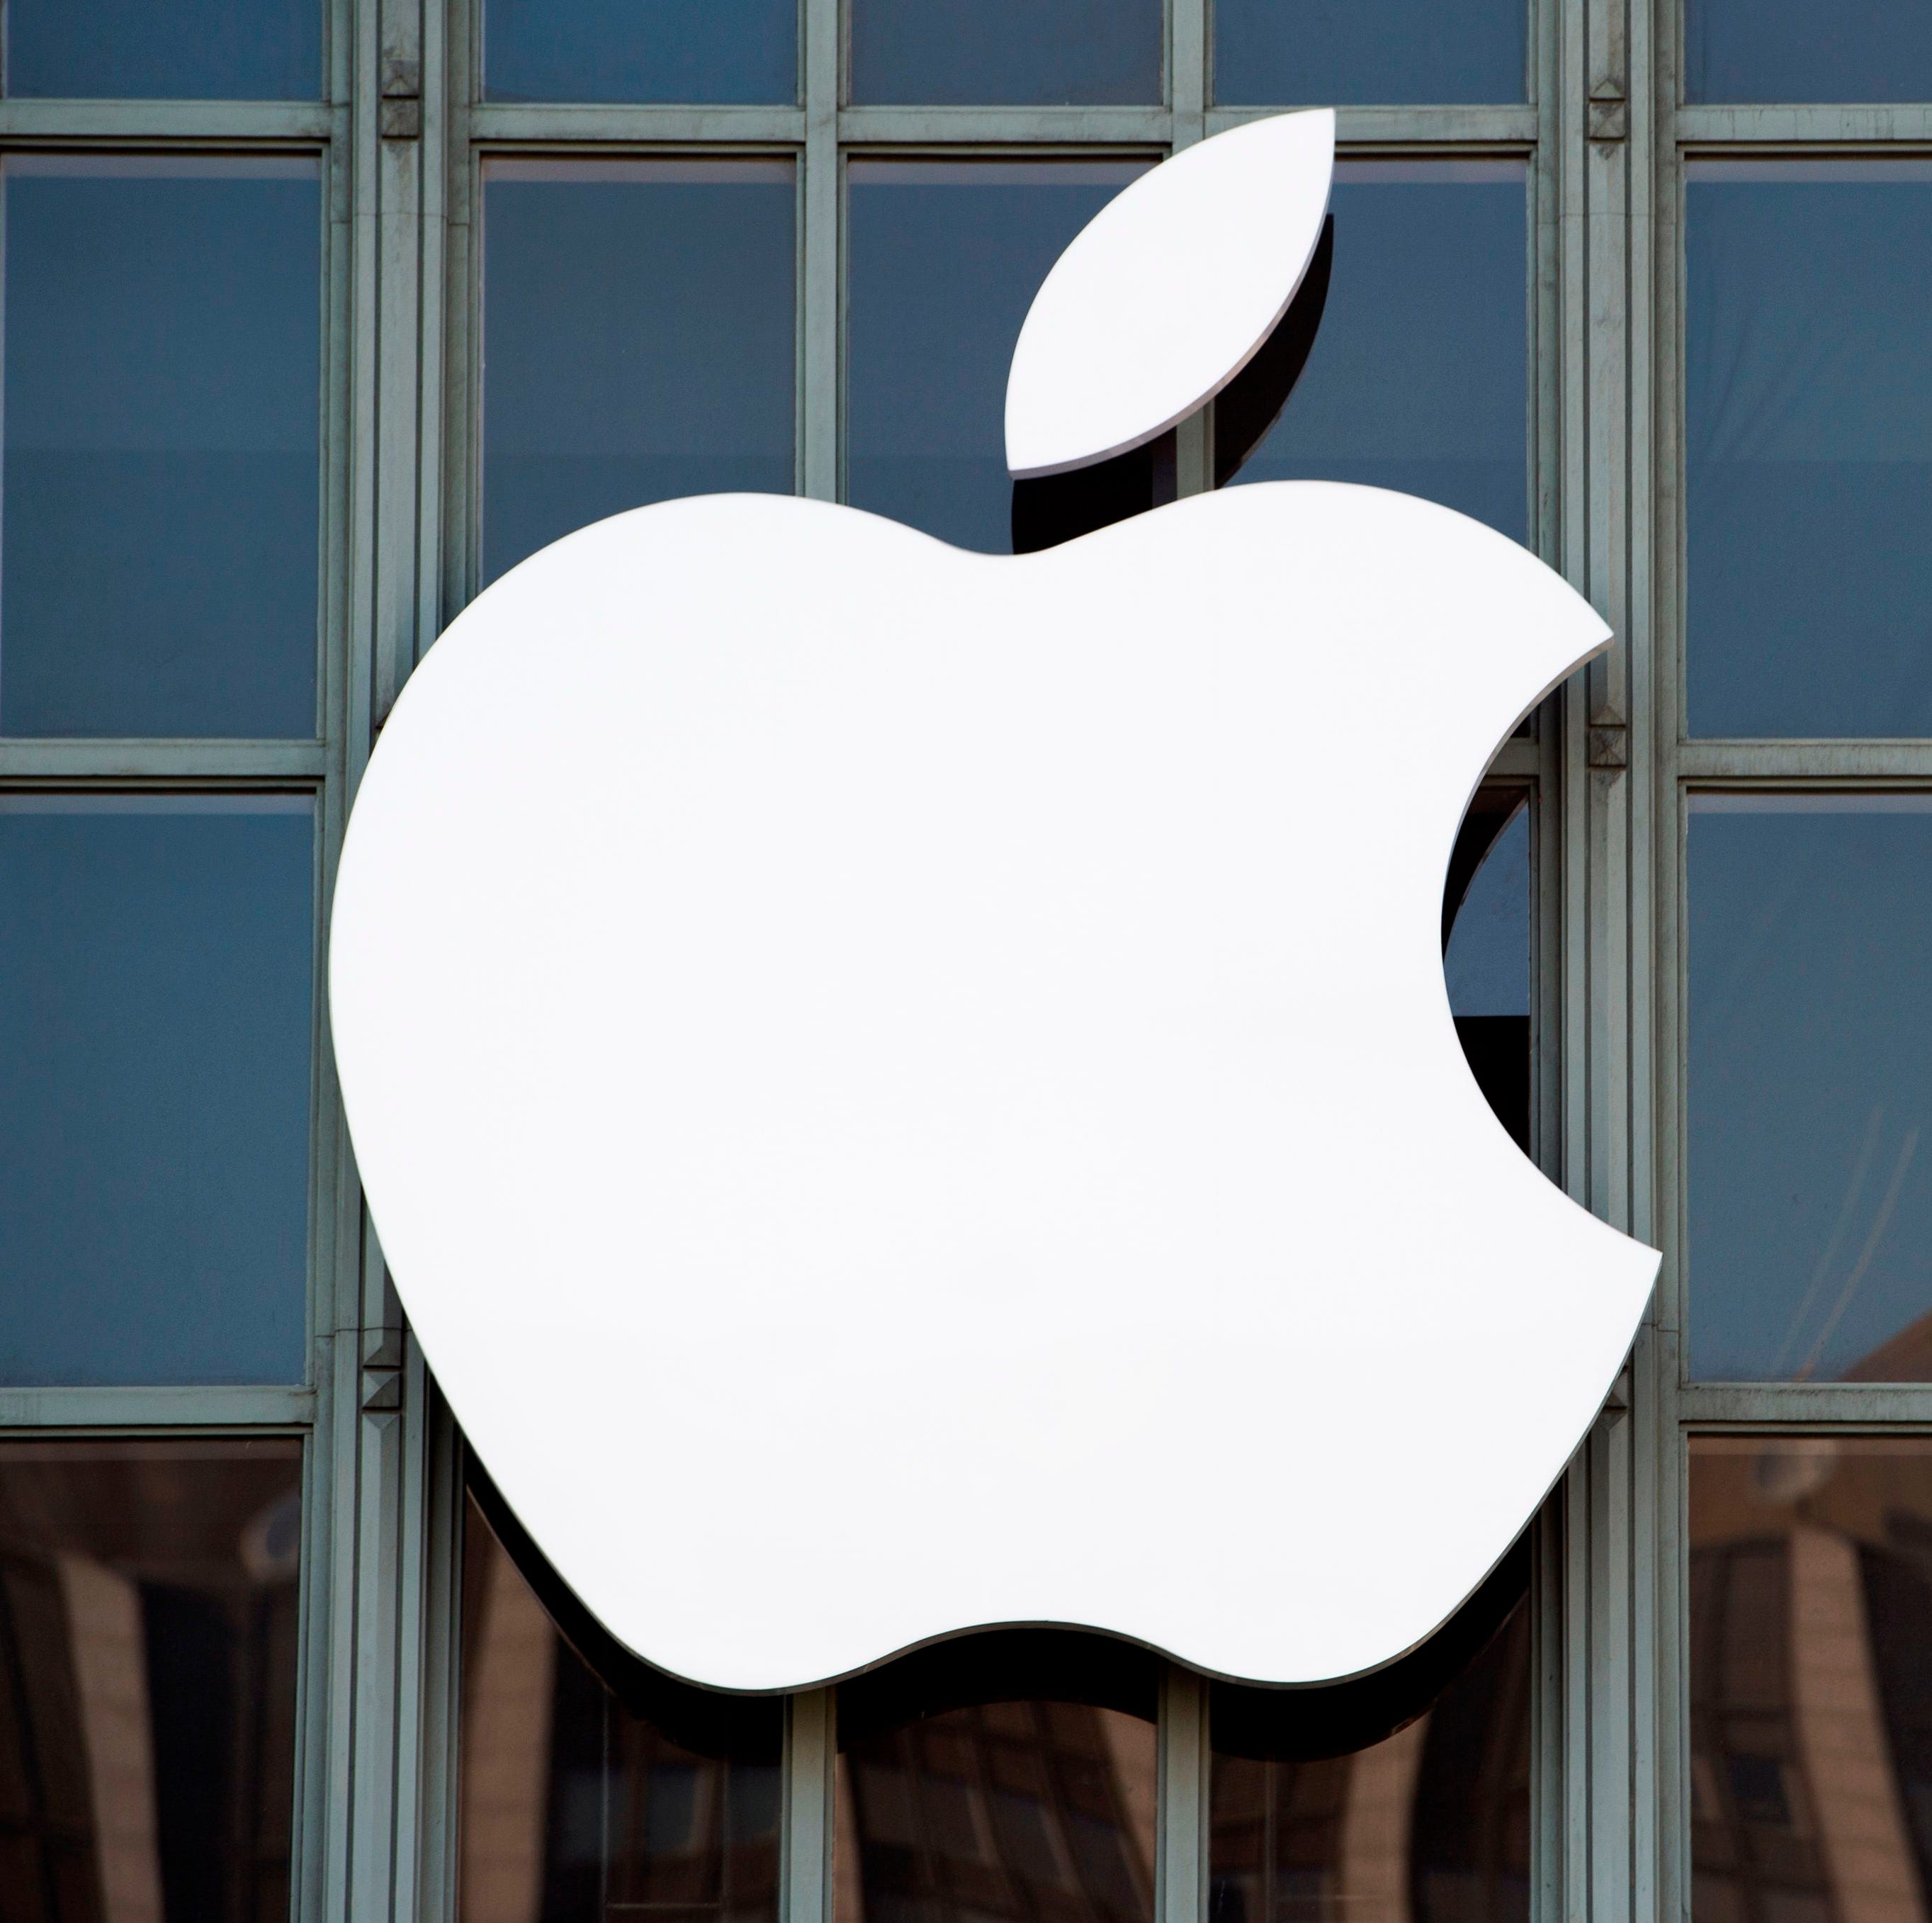 In this file photo taken on September 7, 2016 The Apple logo is seen on the outside of Bill Graham Civic Auditorium before the start of an event in San Francisco, California.